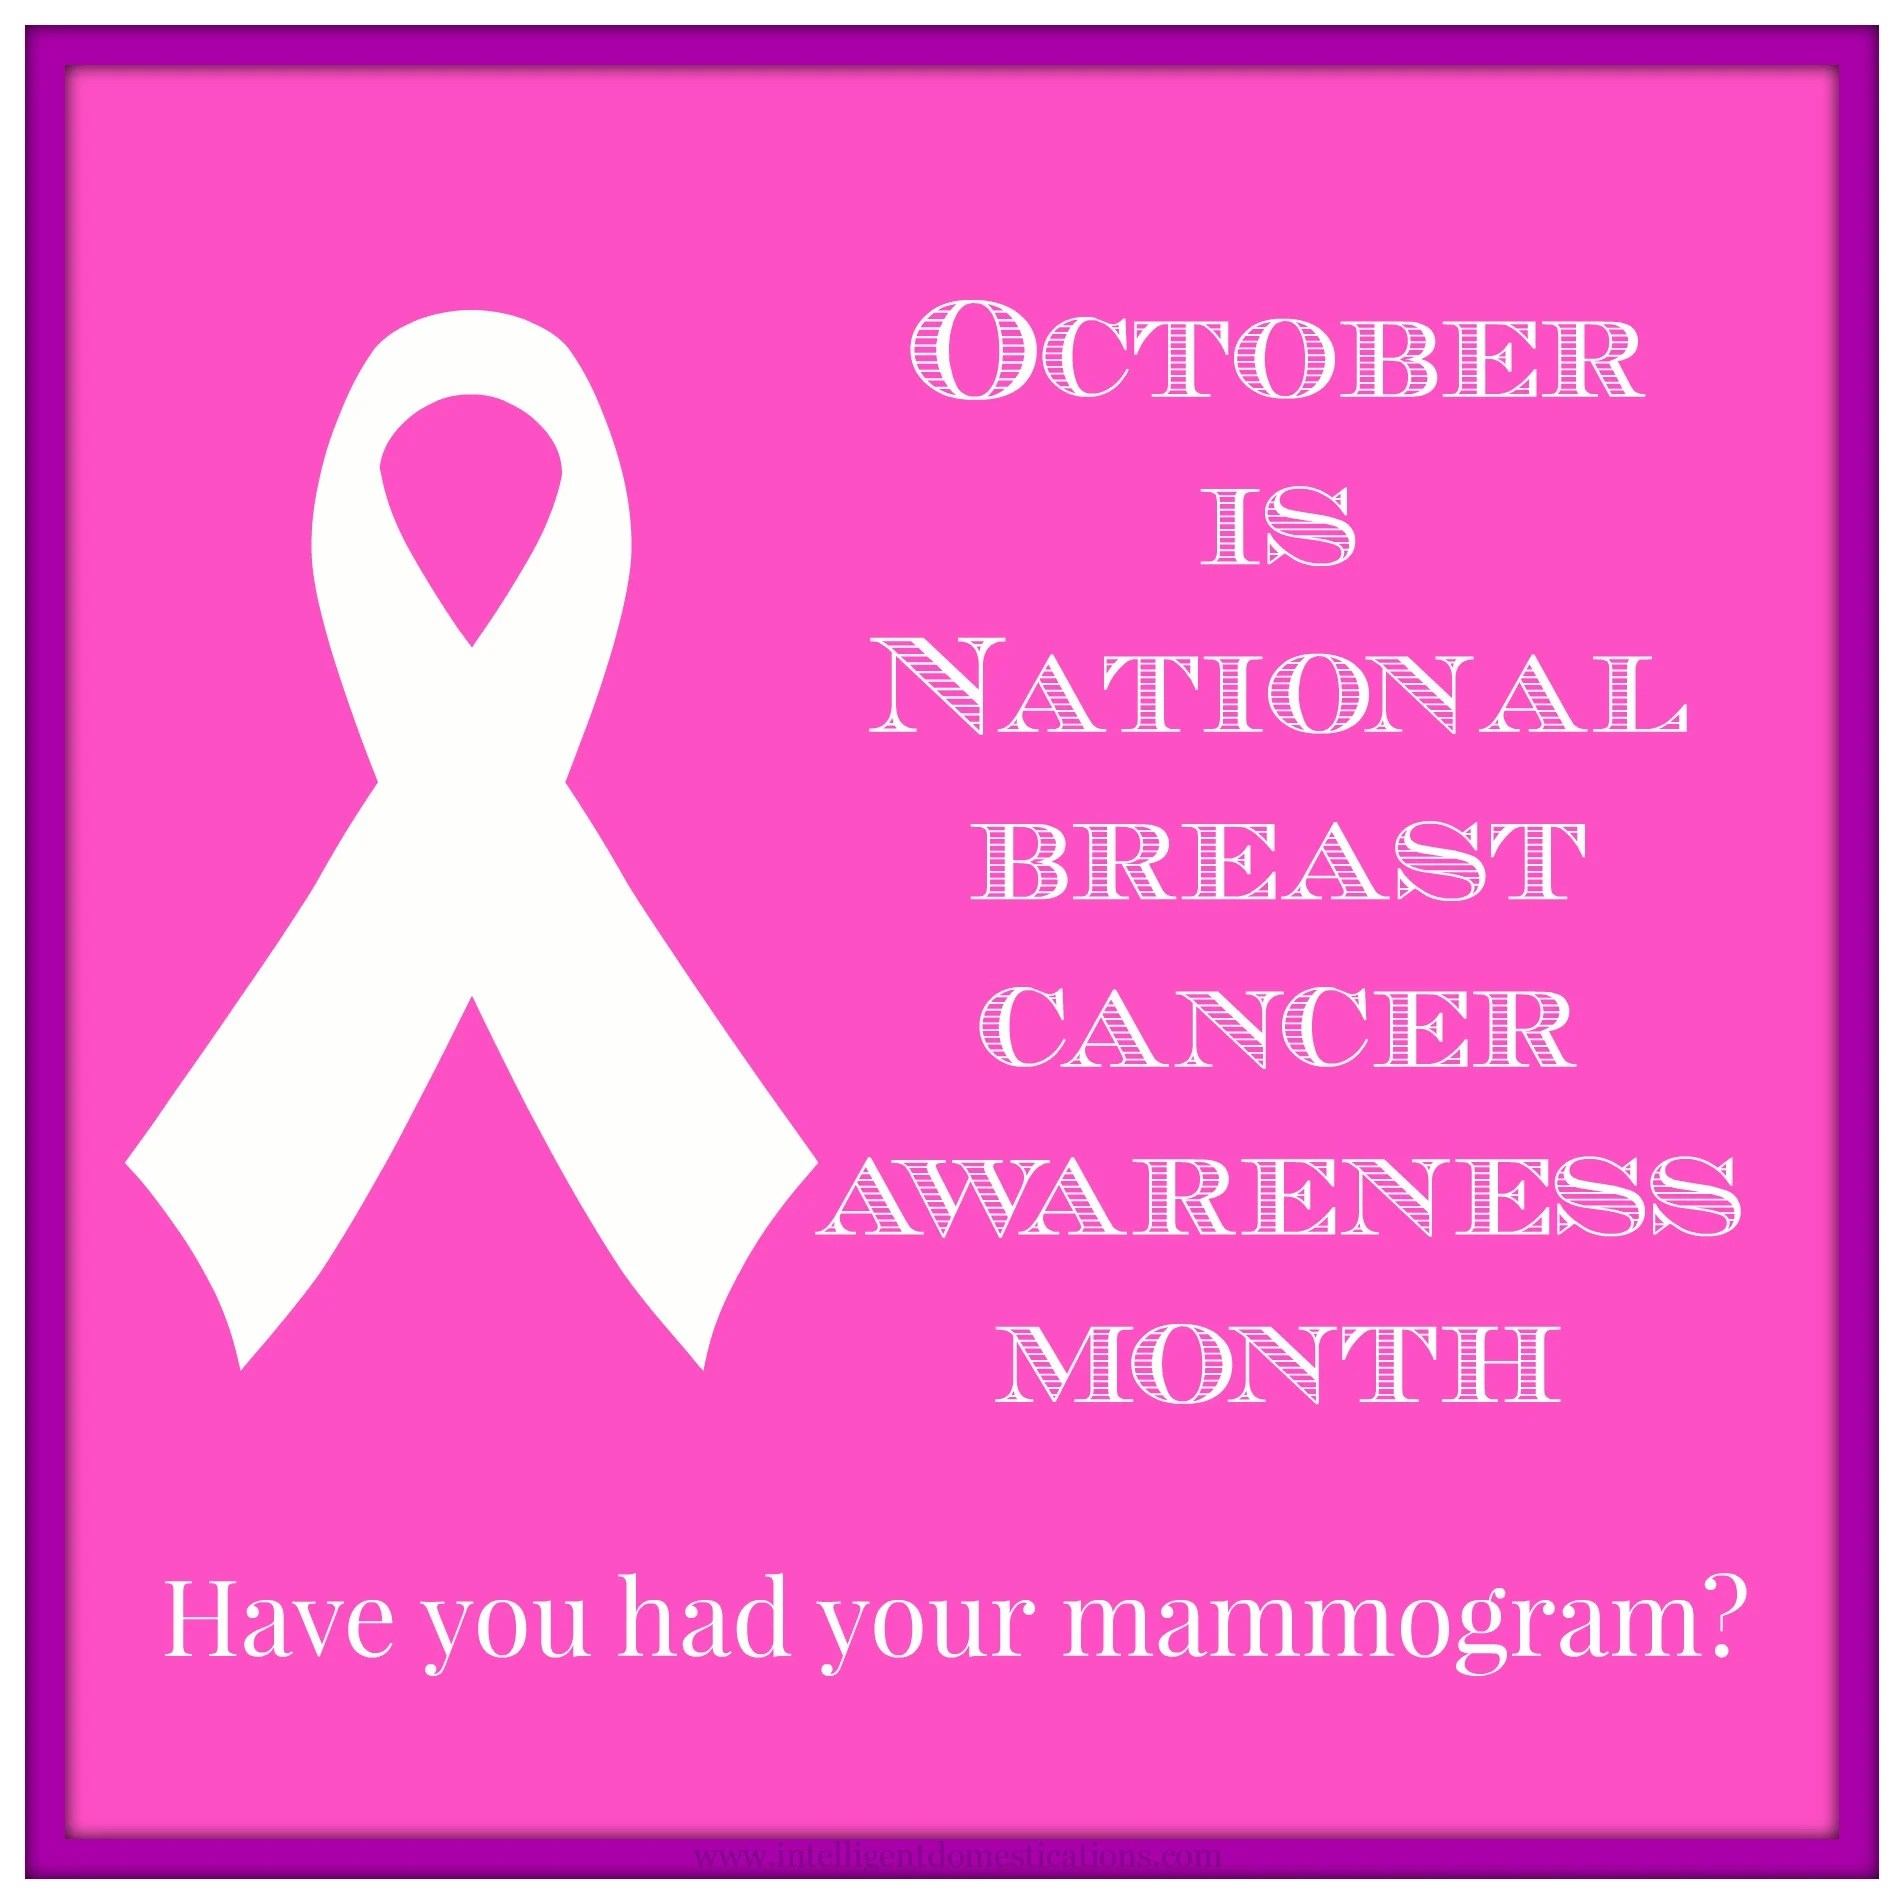 1000 Images About Cancer Journey On Pinterest: My Story About My Mother's Breast Cancer Journey